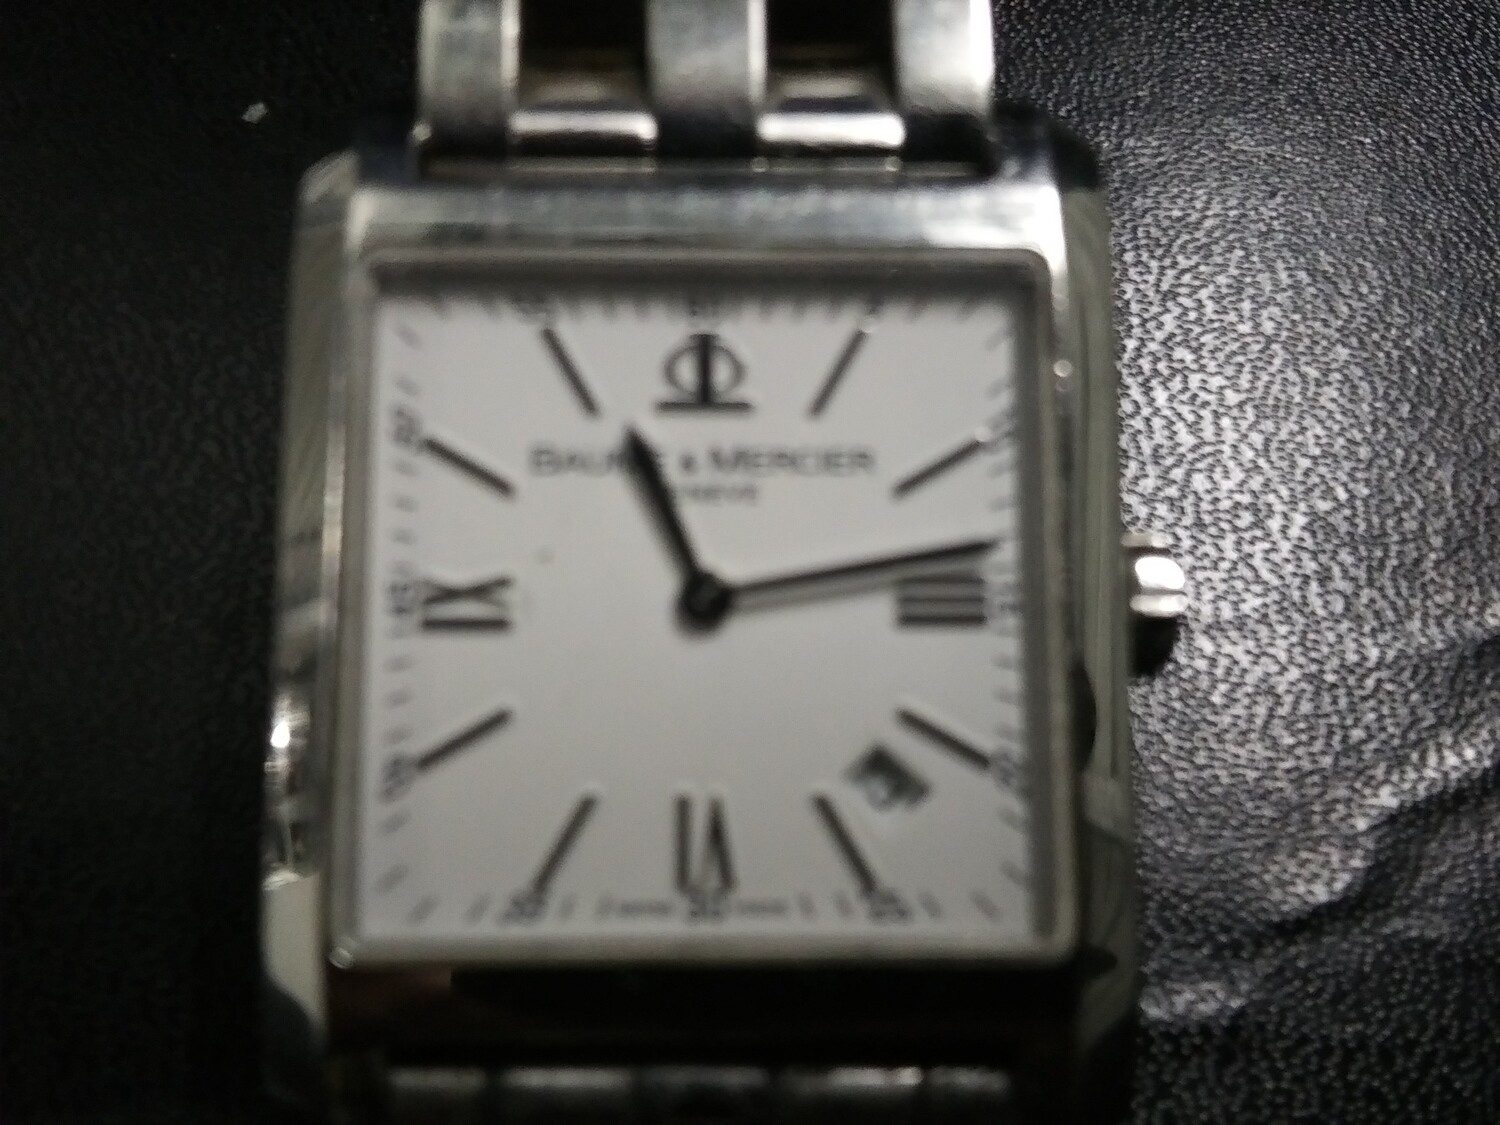 Baume & Mercier Hampton Stainless Steel Watch